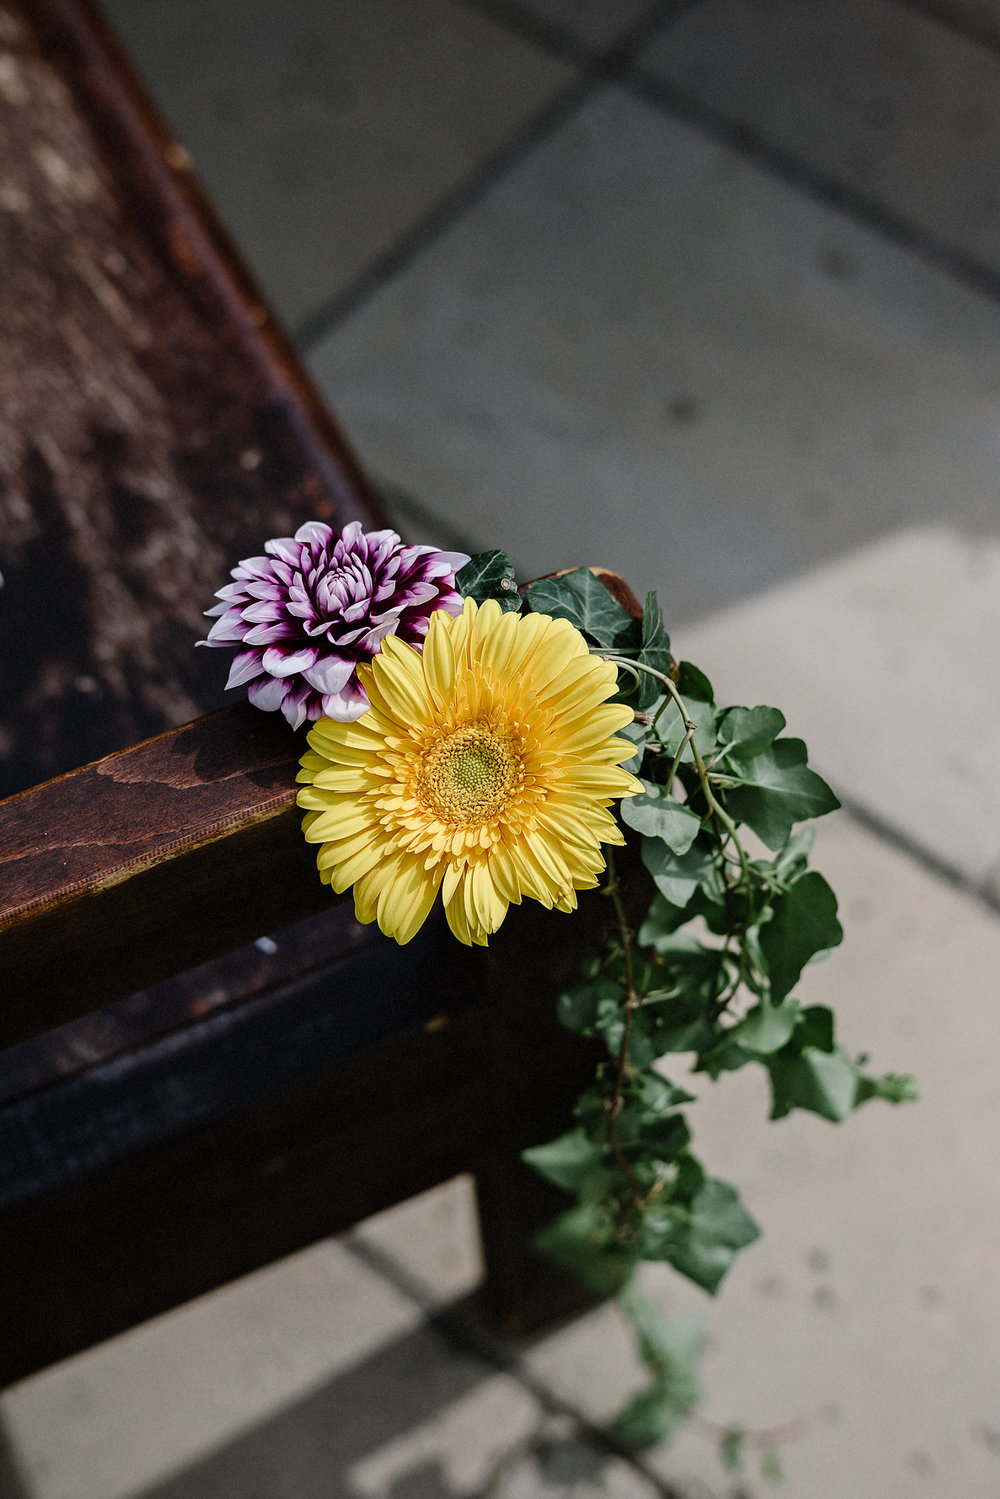 Best-Wedding-Photographers-Toronto-with-a-documentary-photojournalistic-approach-and-style-Toronto-Island-Cafe-Clubhouse-Wedding-Photography-Hip-Cool-Bride-and-Groom-Island-Cafe-Exterior-Flowers.jpg